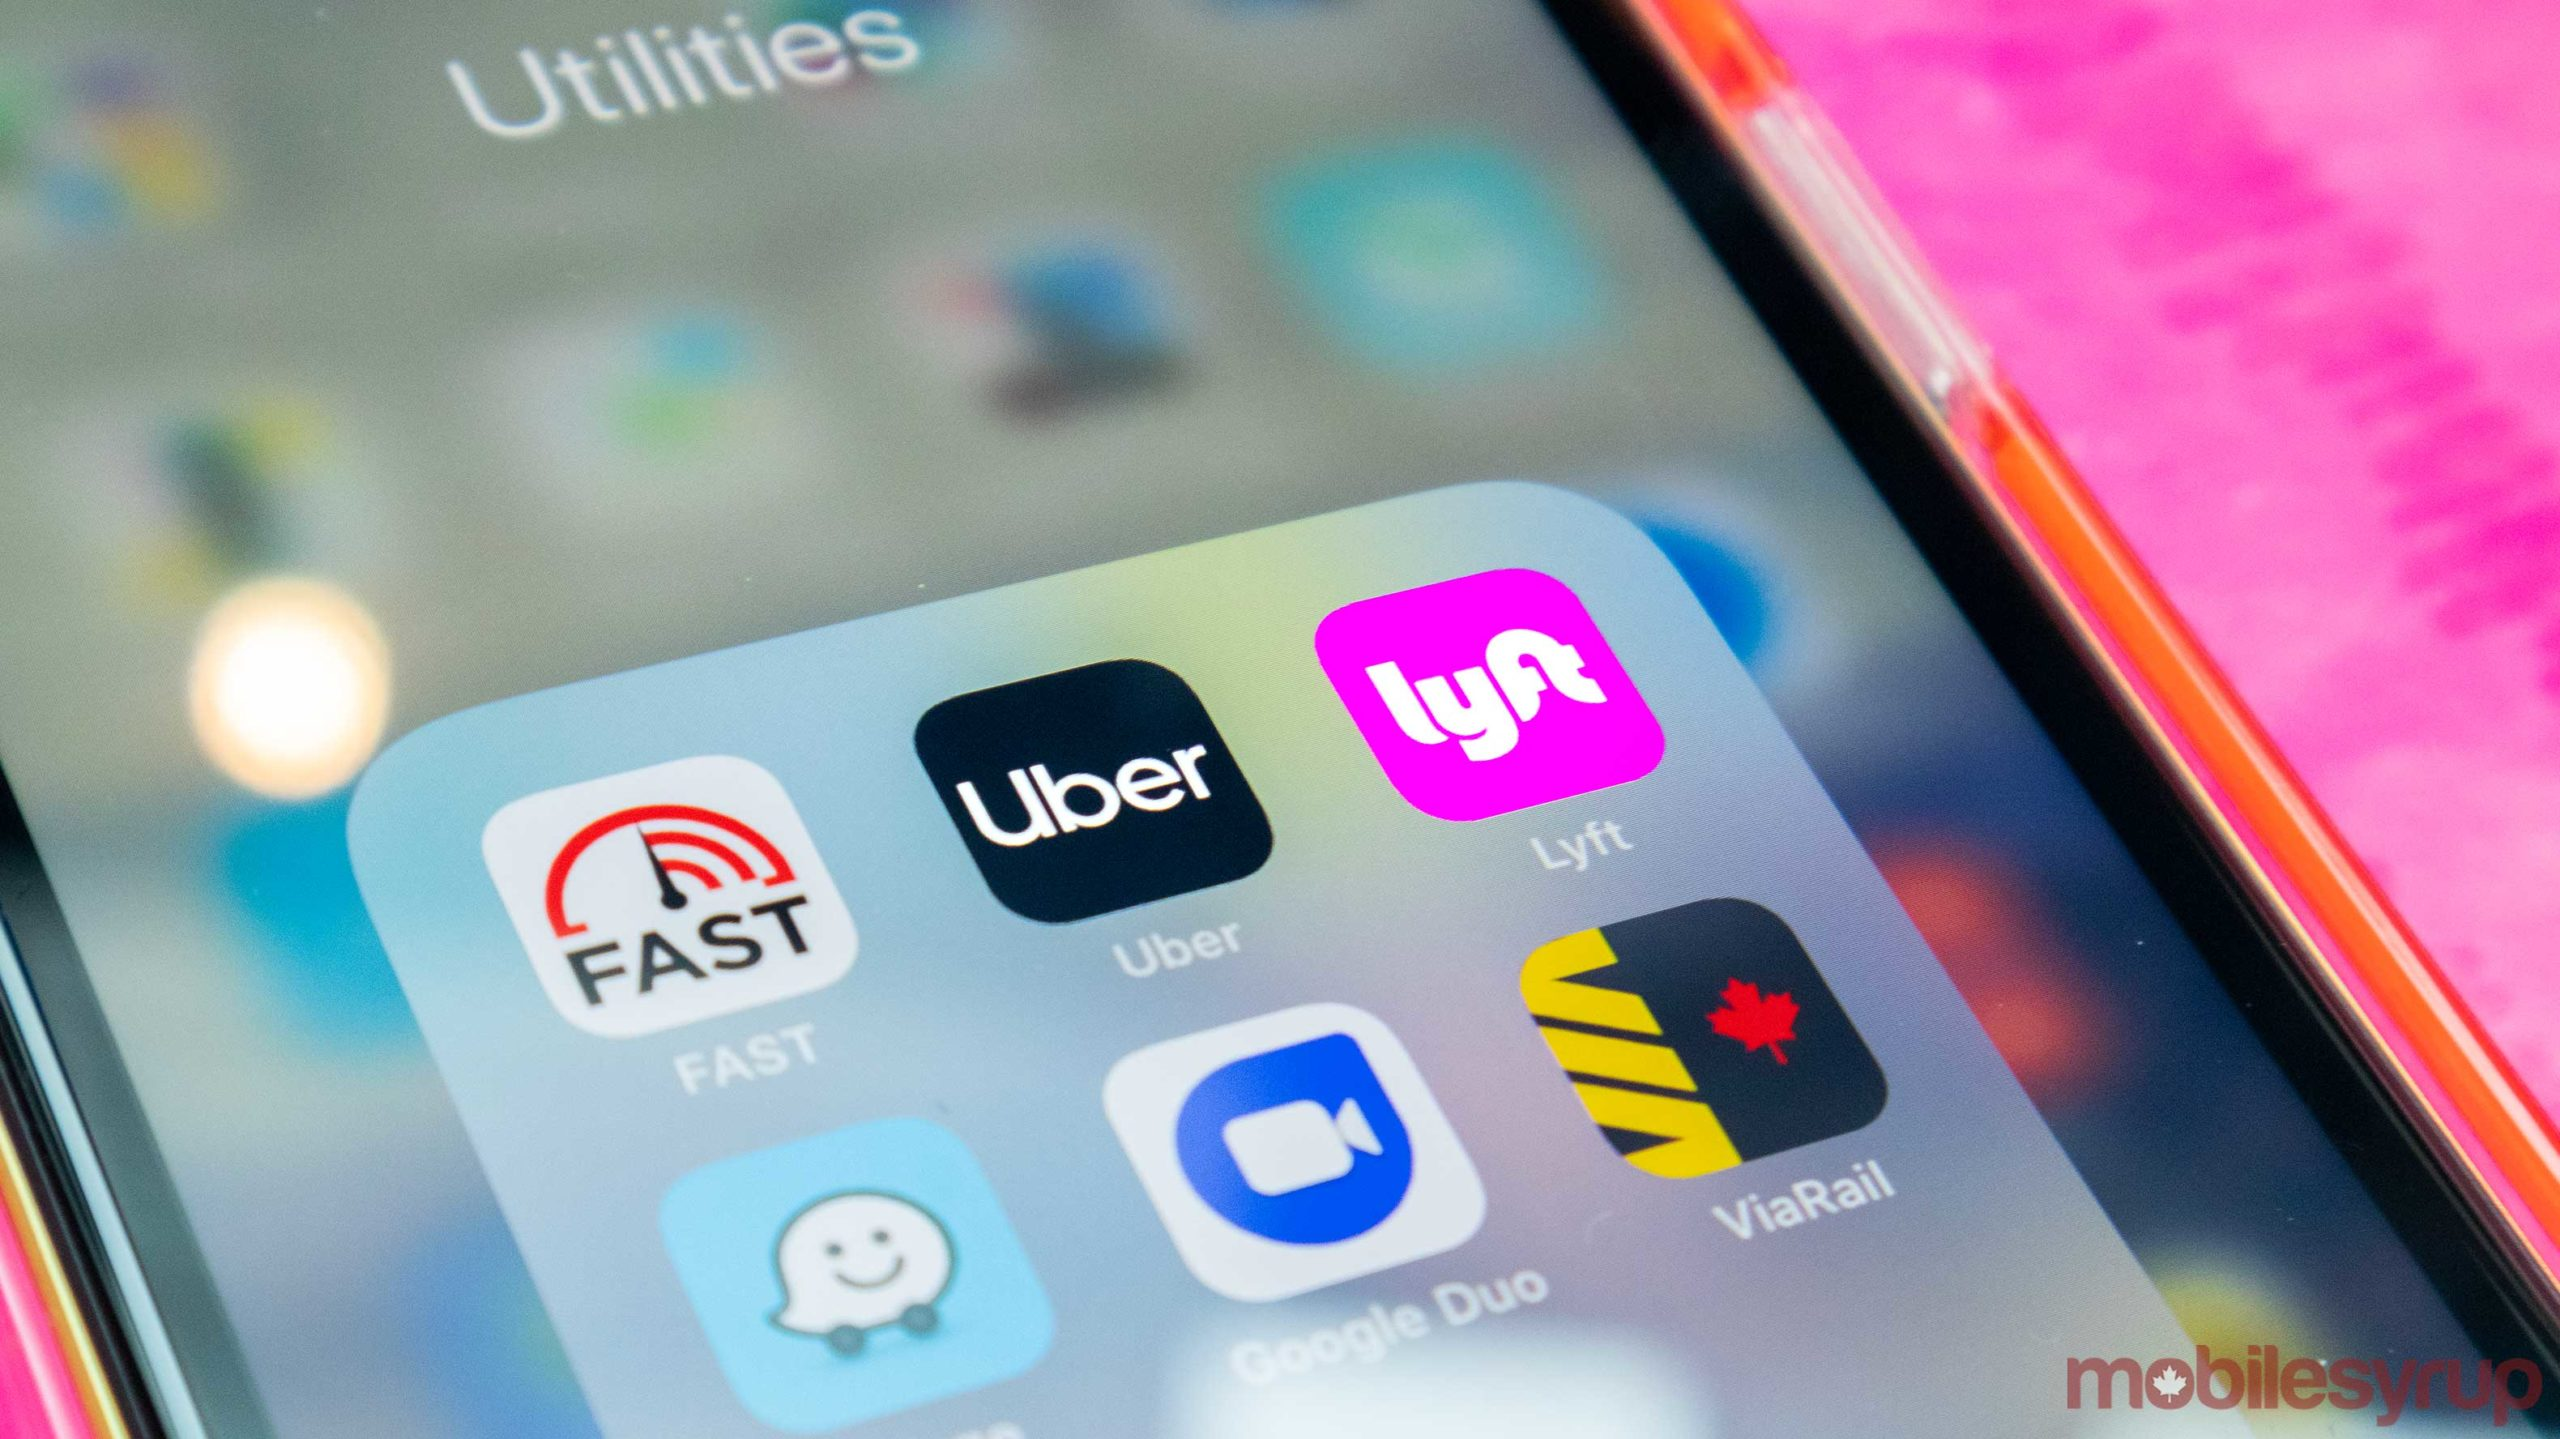 Lyft and Uber are operating in Vancouver now